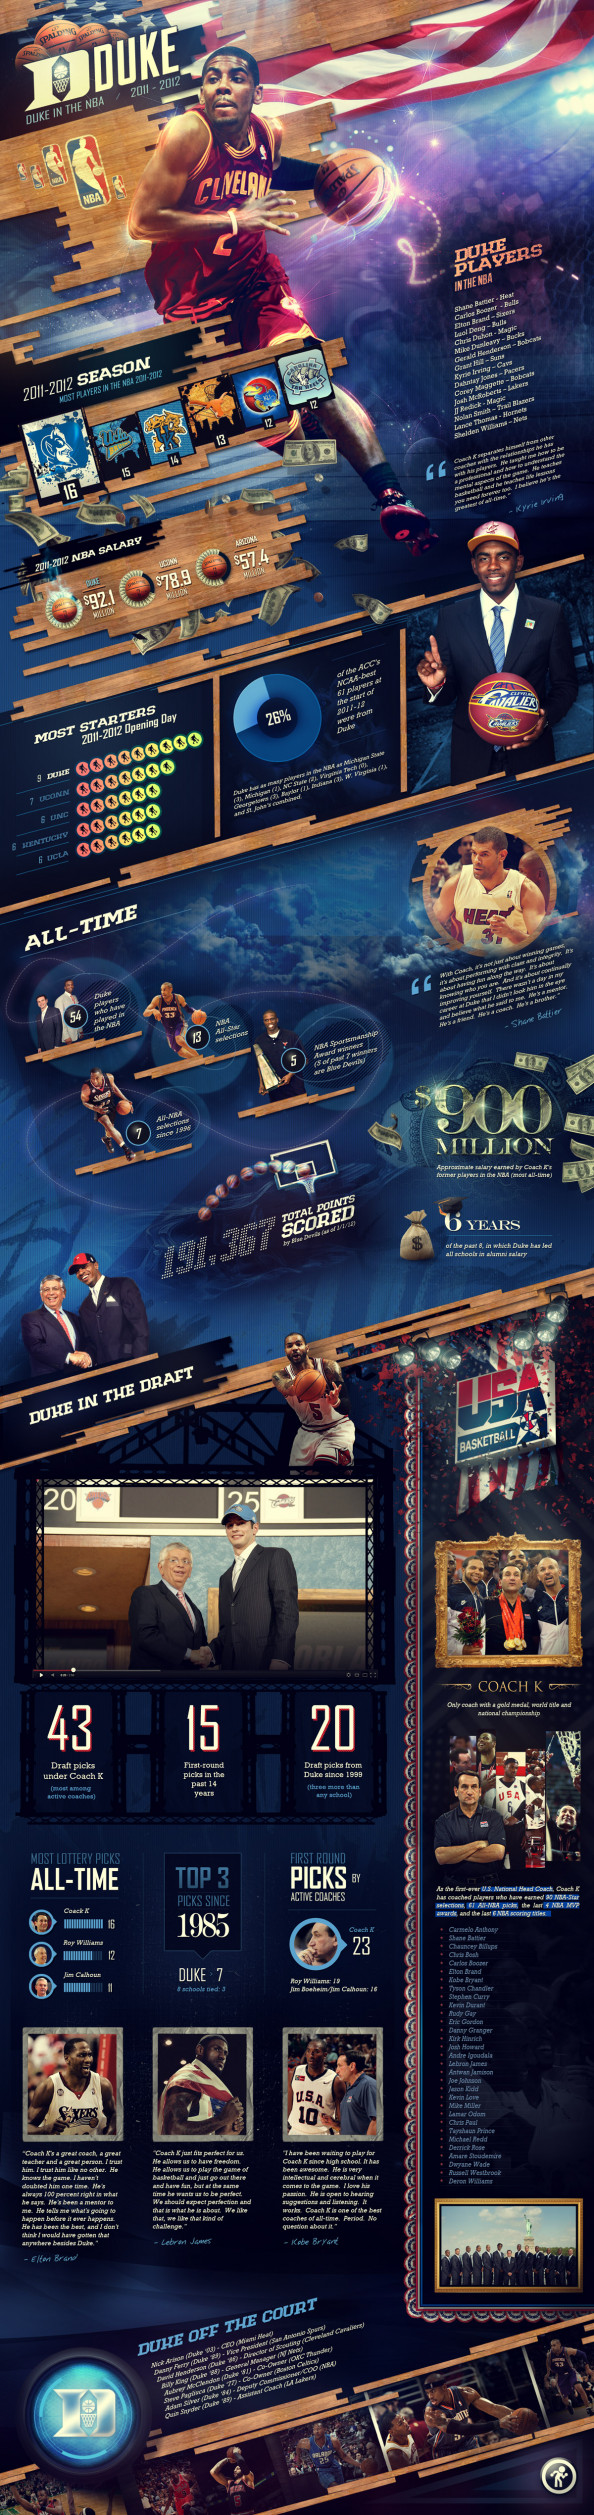 Duke in the NBA Infographic